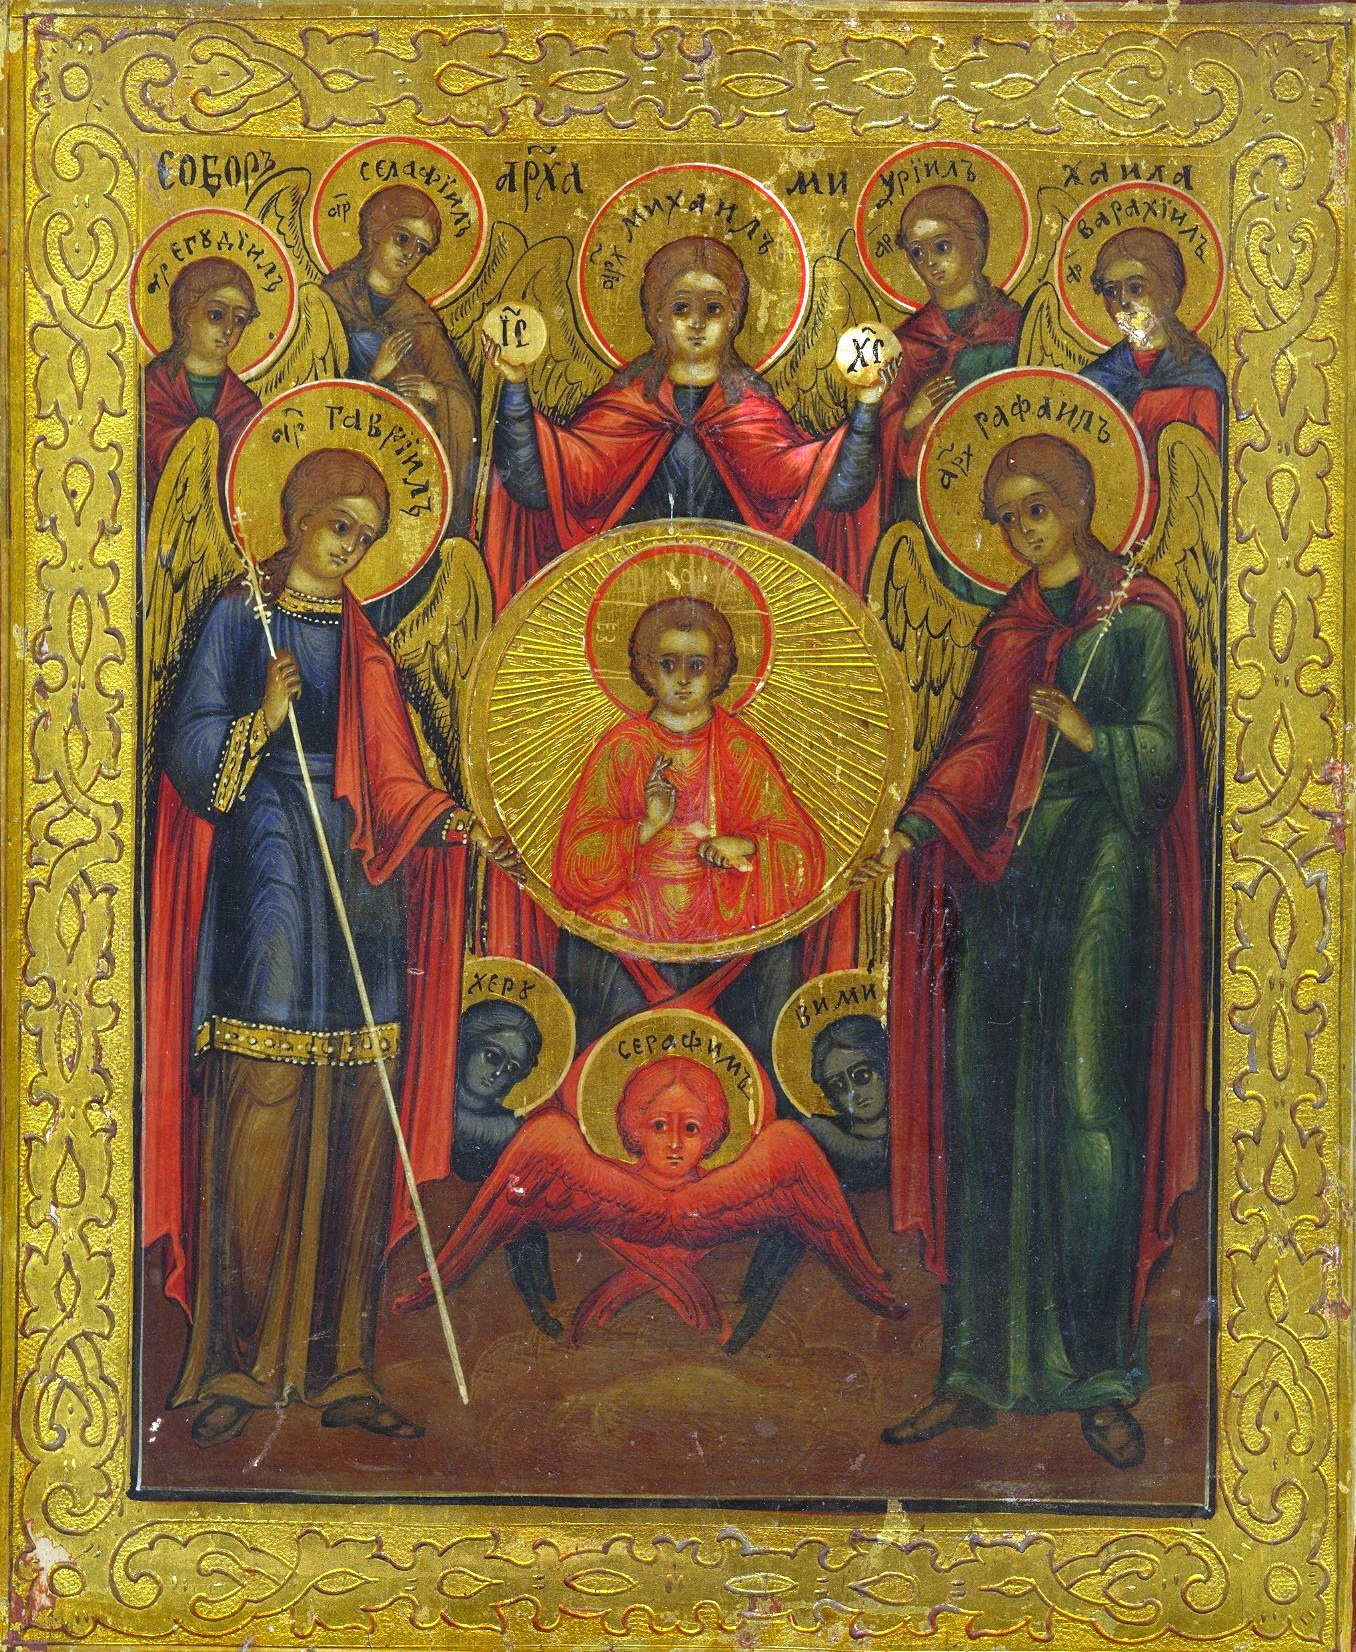 http://upload.wikimedia.org/wikipedia/commons/e/e8/Archangels.JPG